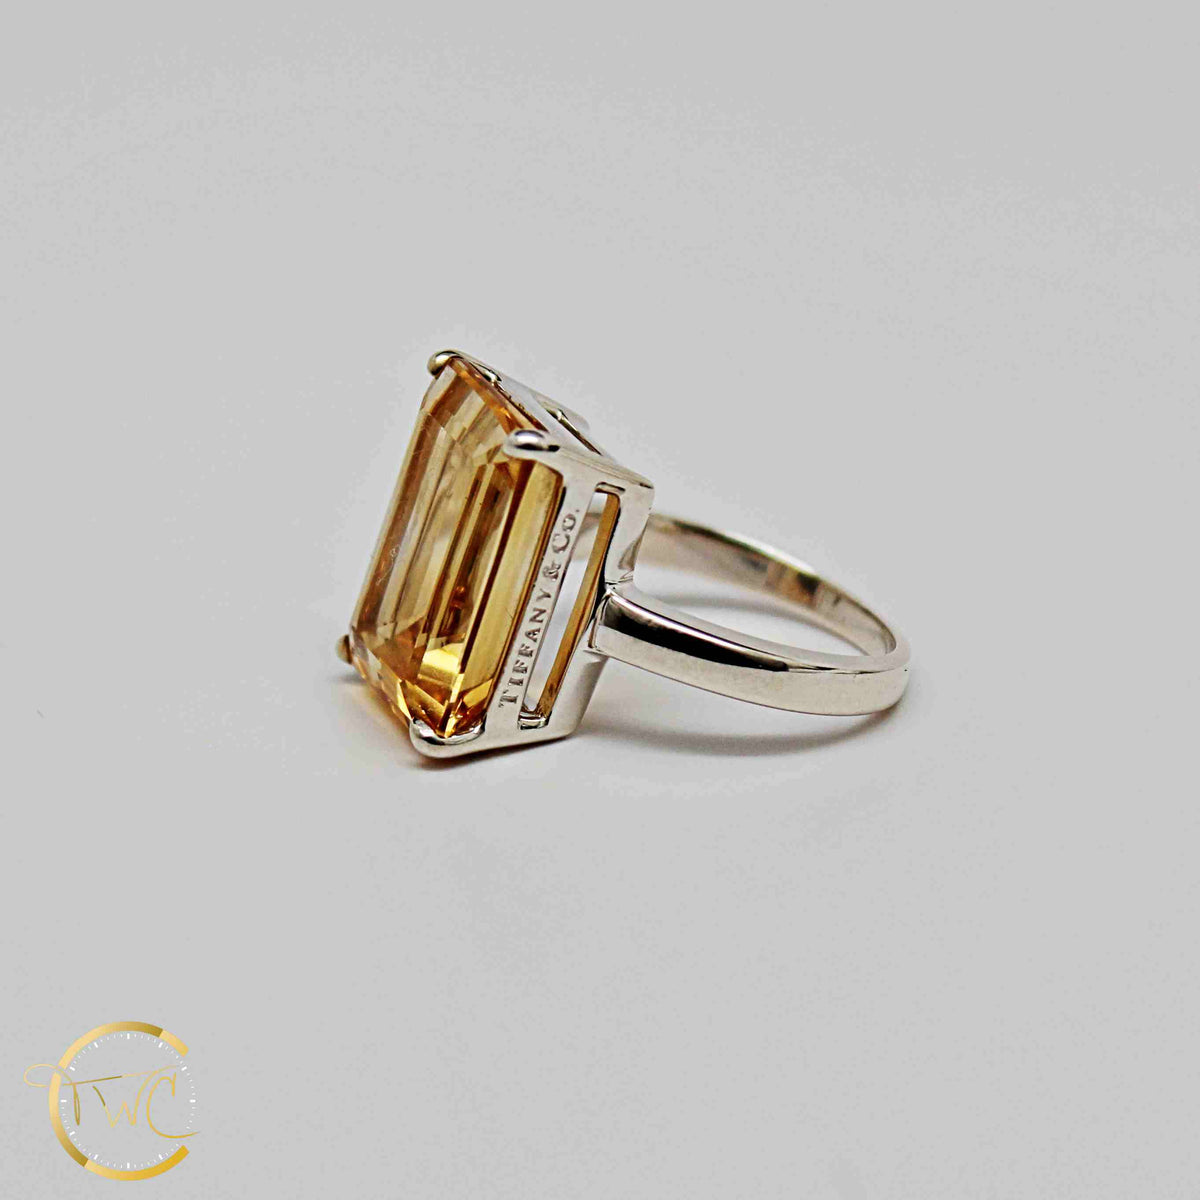 22ee10524 Tiffany & Co Sparklers Cocktail ring Emerald cut 9 carat Citrine ...